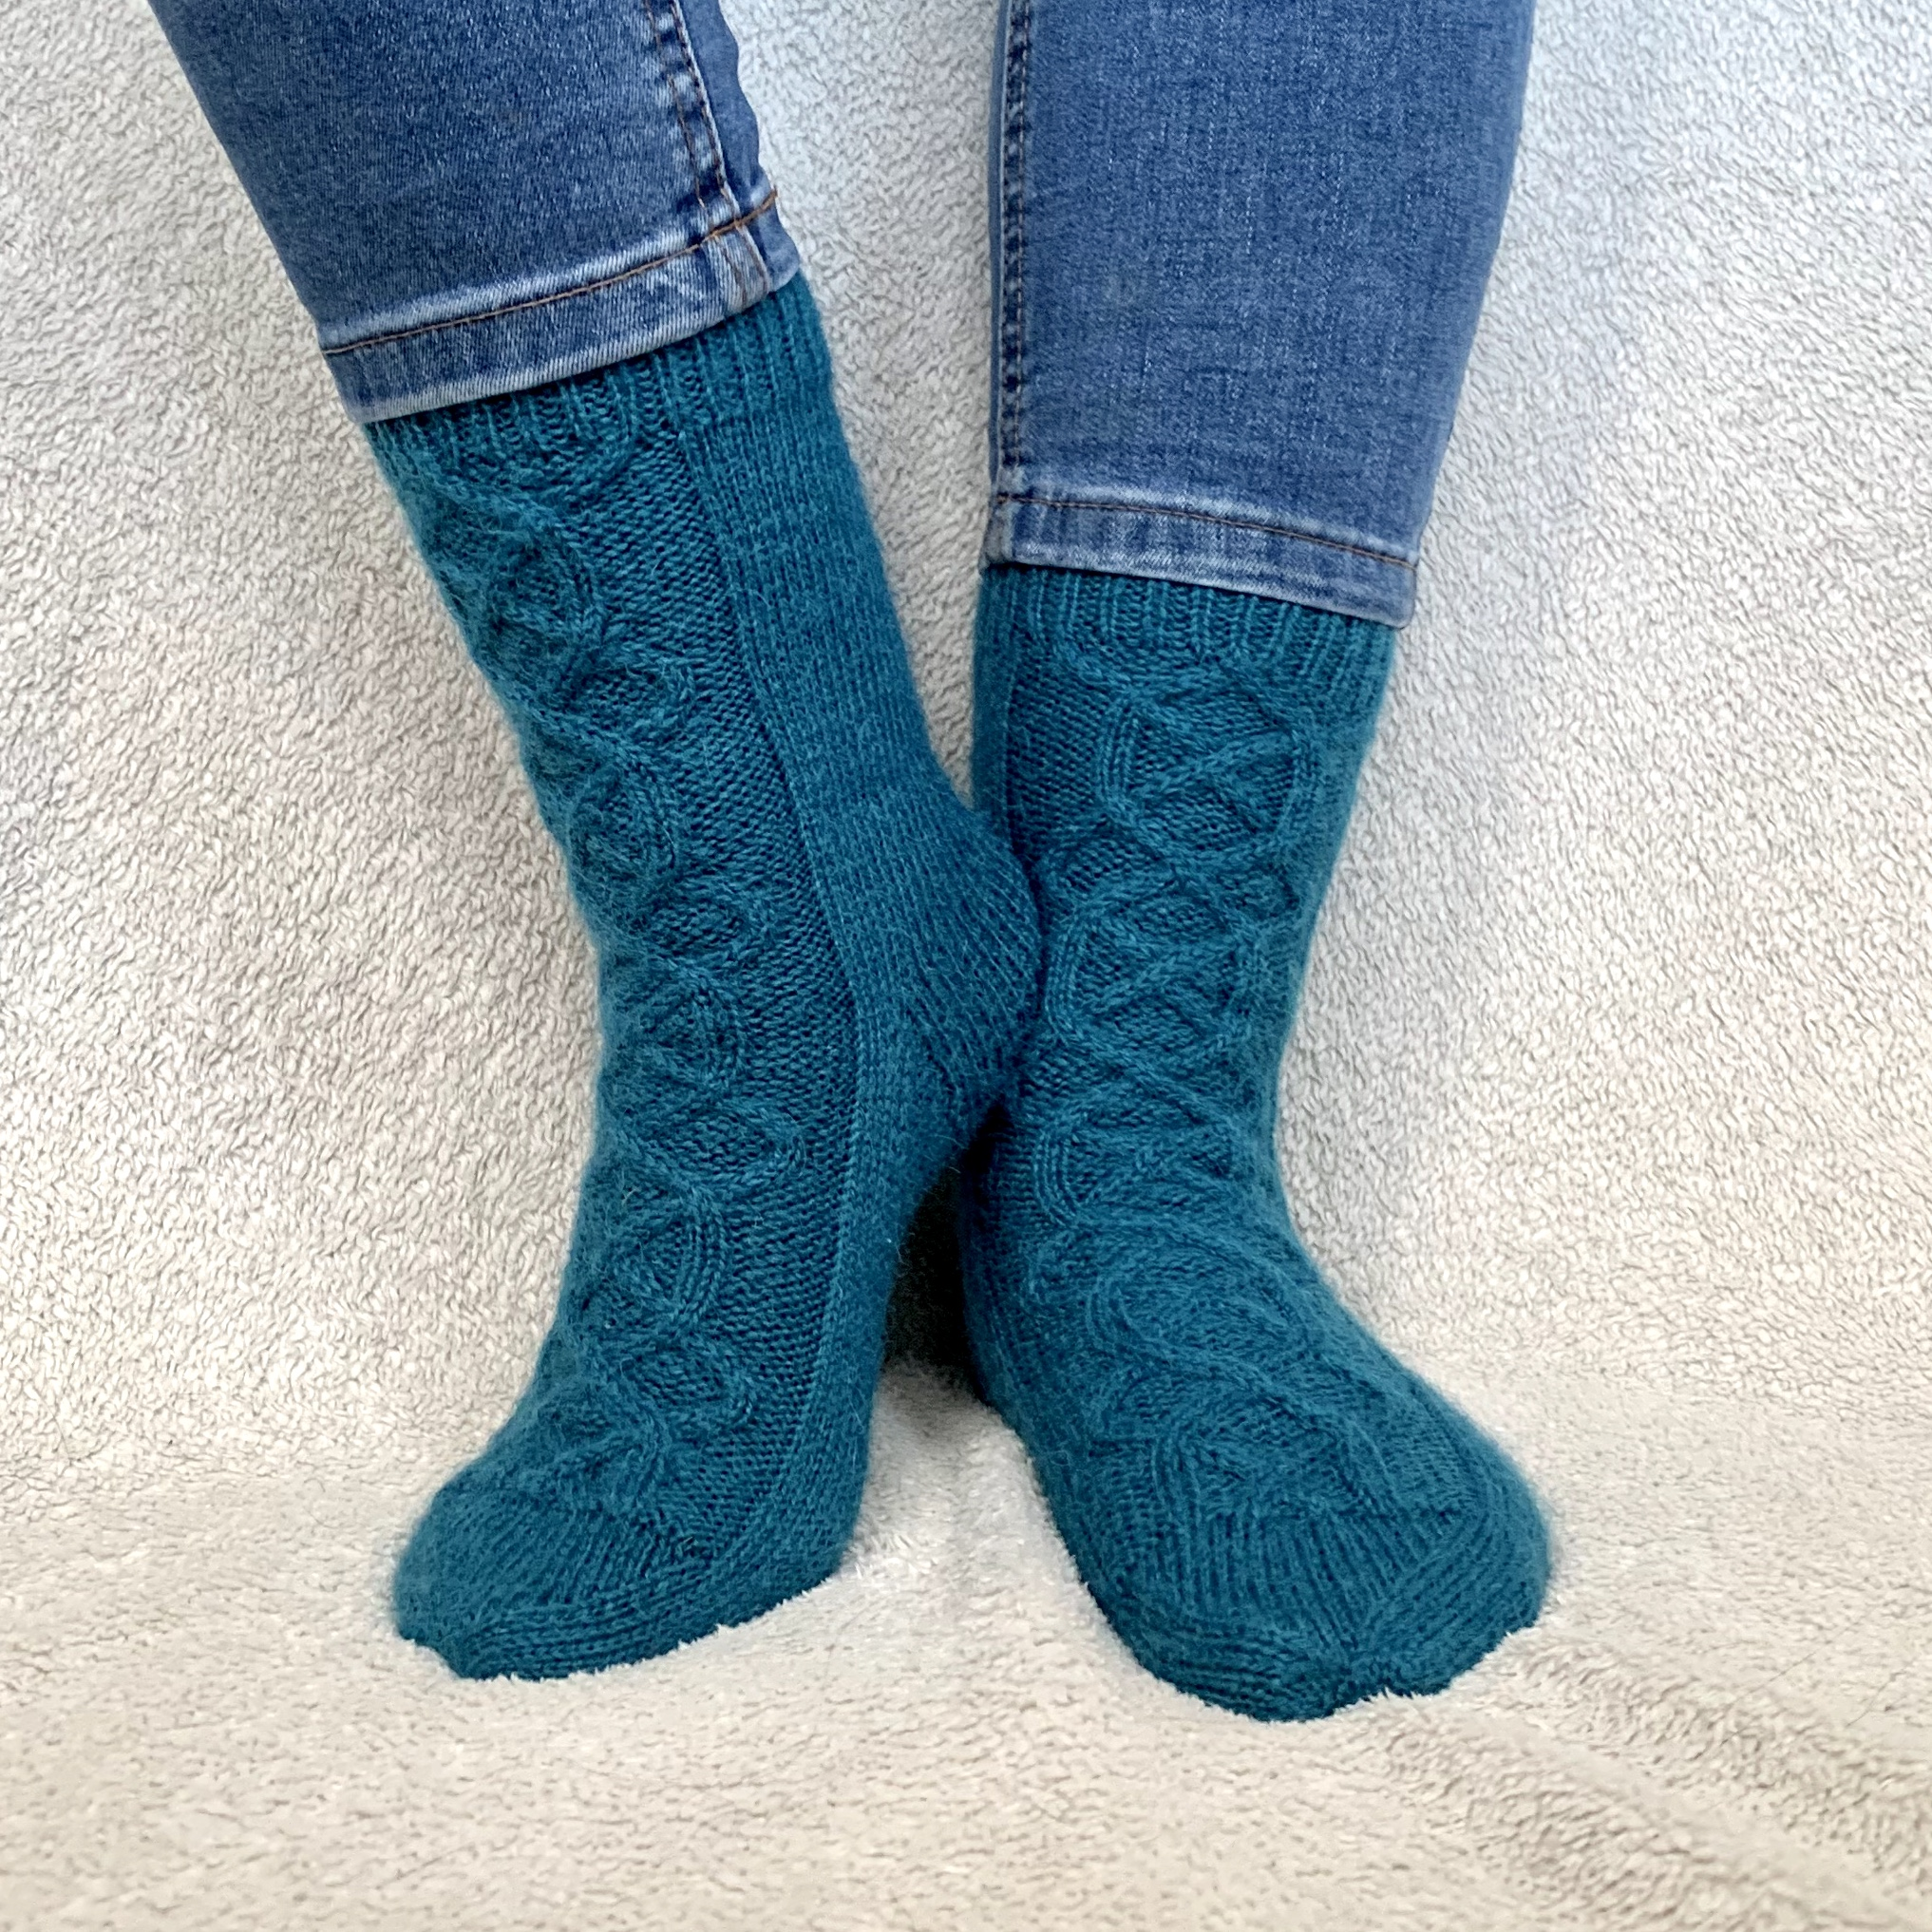 Borealis socks. Teal wool socks with cable detail running up the top of the foot and front of the leg.